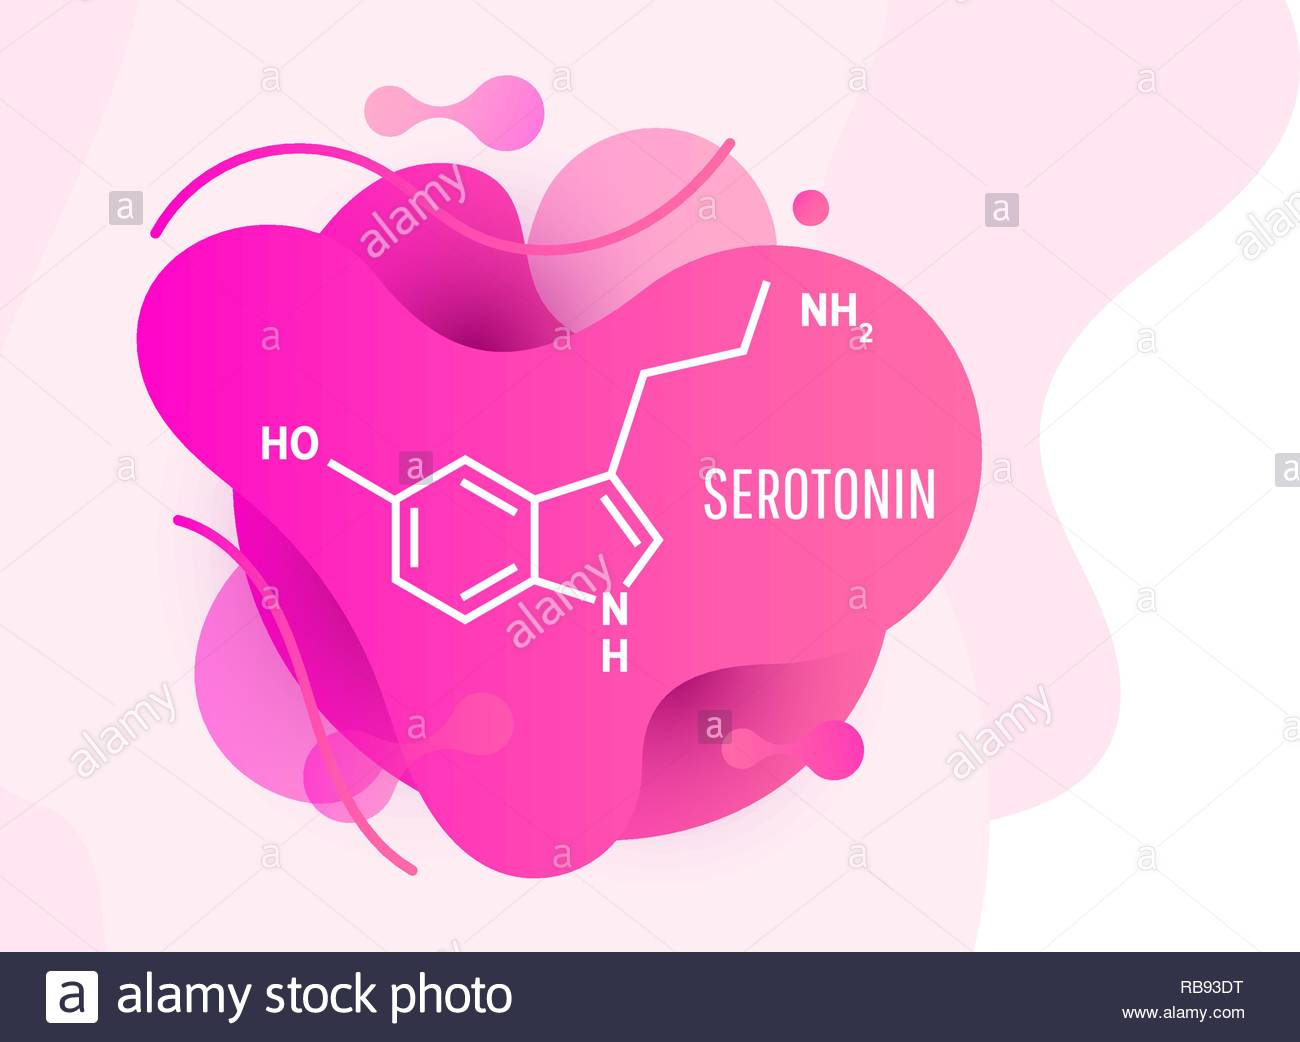 Serotonin hormone structural chemical formula on wave liquid 1300x1042